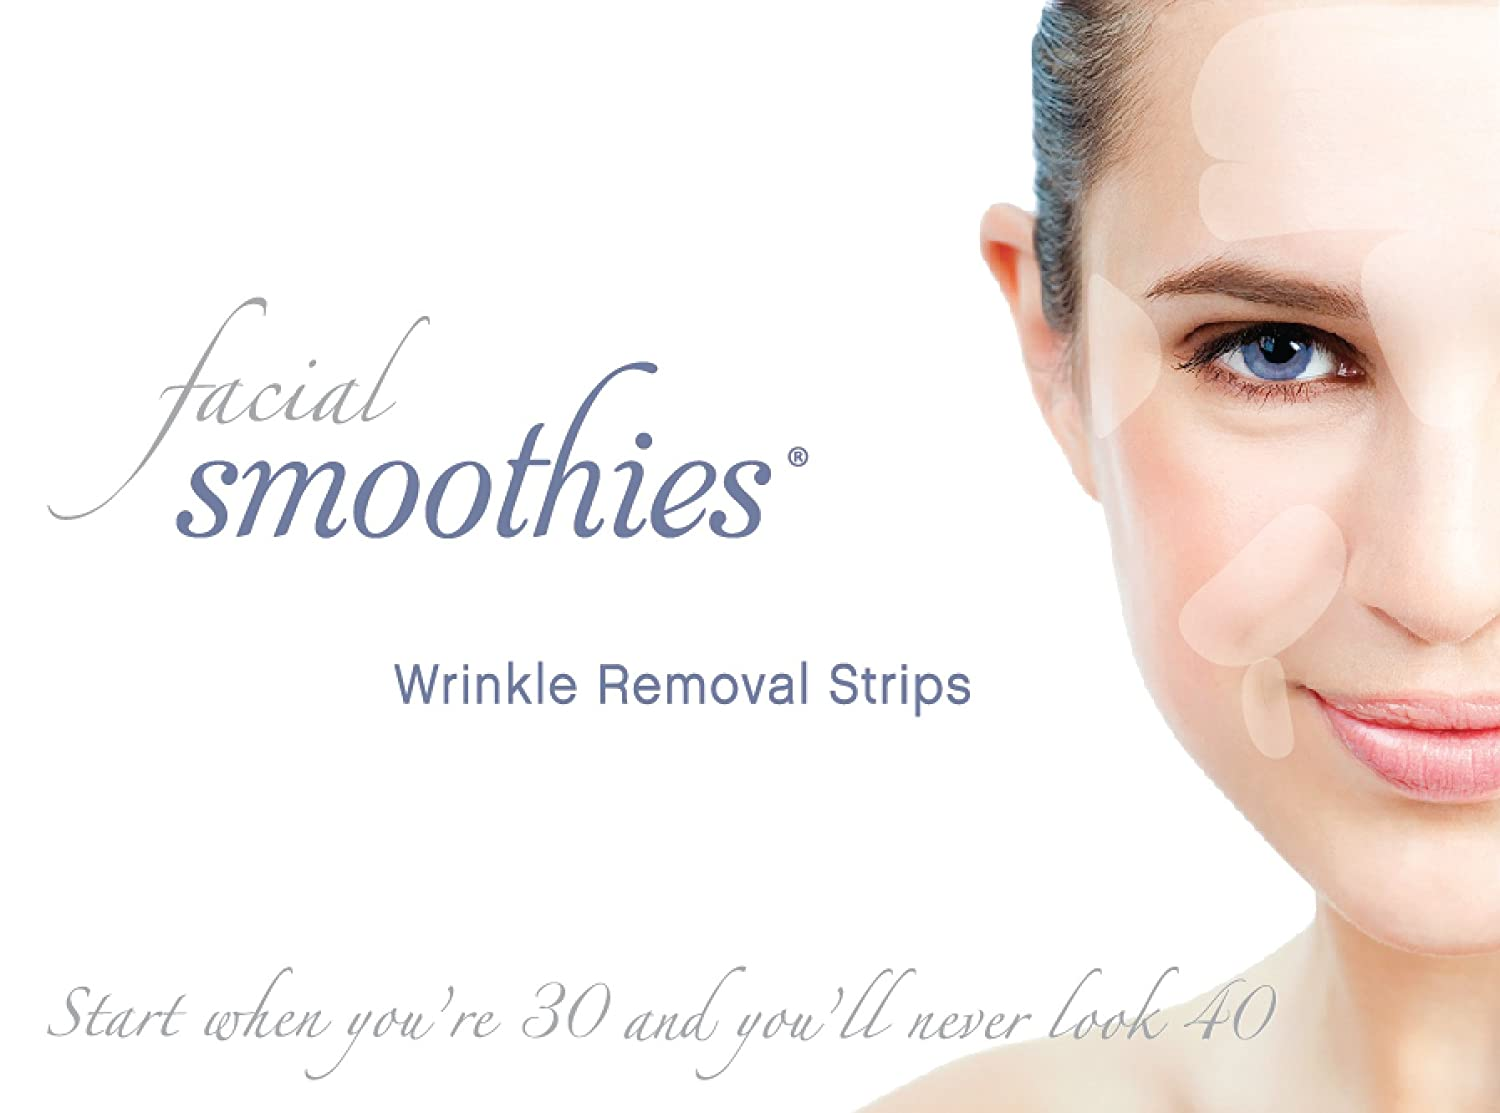 Facial Smoothies Wrinkle Remover Strips - Anti-Wrinkle Patches - Anti-Aging Treatment - Anti Wrinkle Treatment 120 Wrinkle Remover Strips